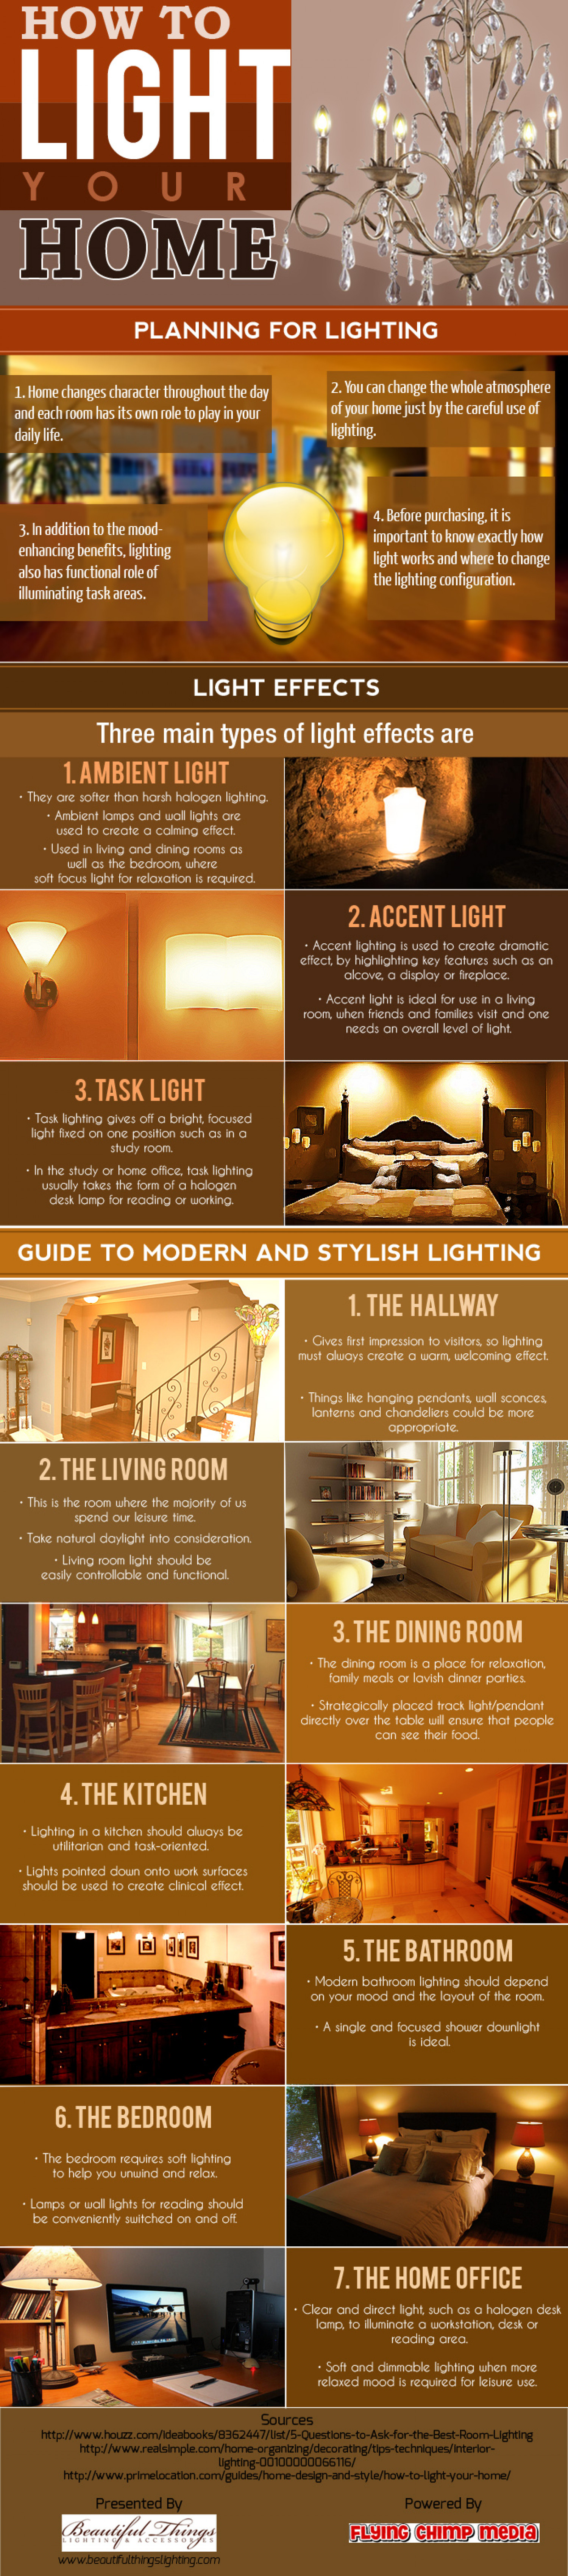 How to Light Your Home Infographic